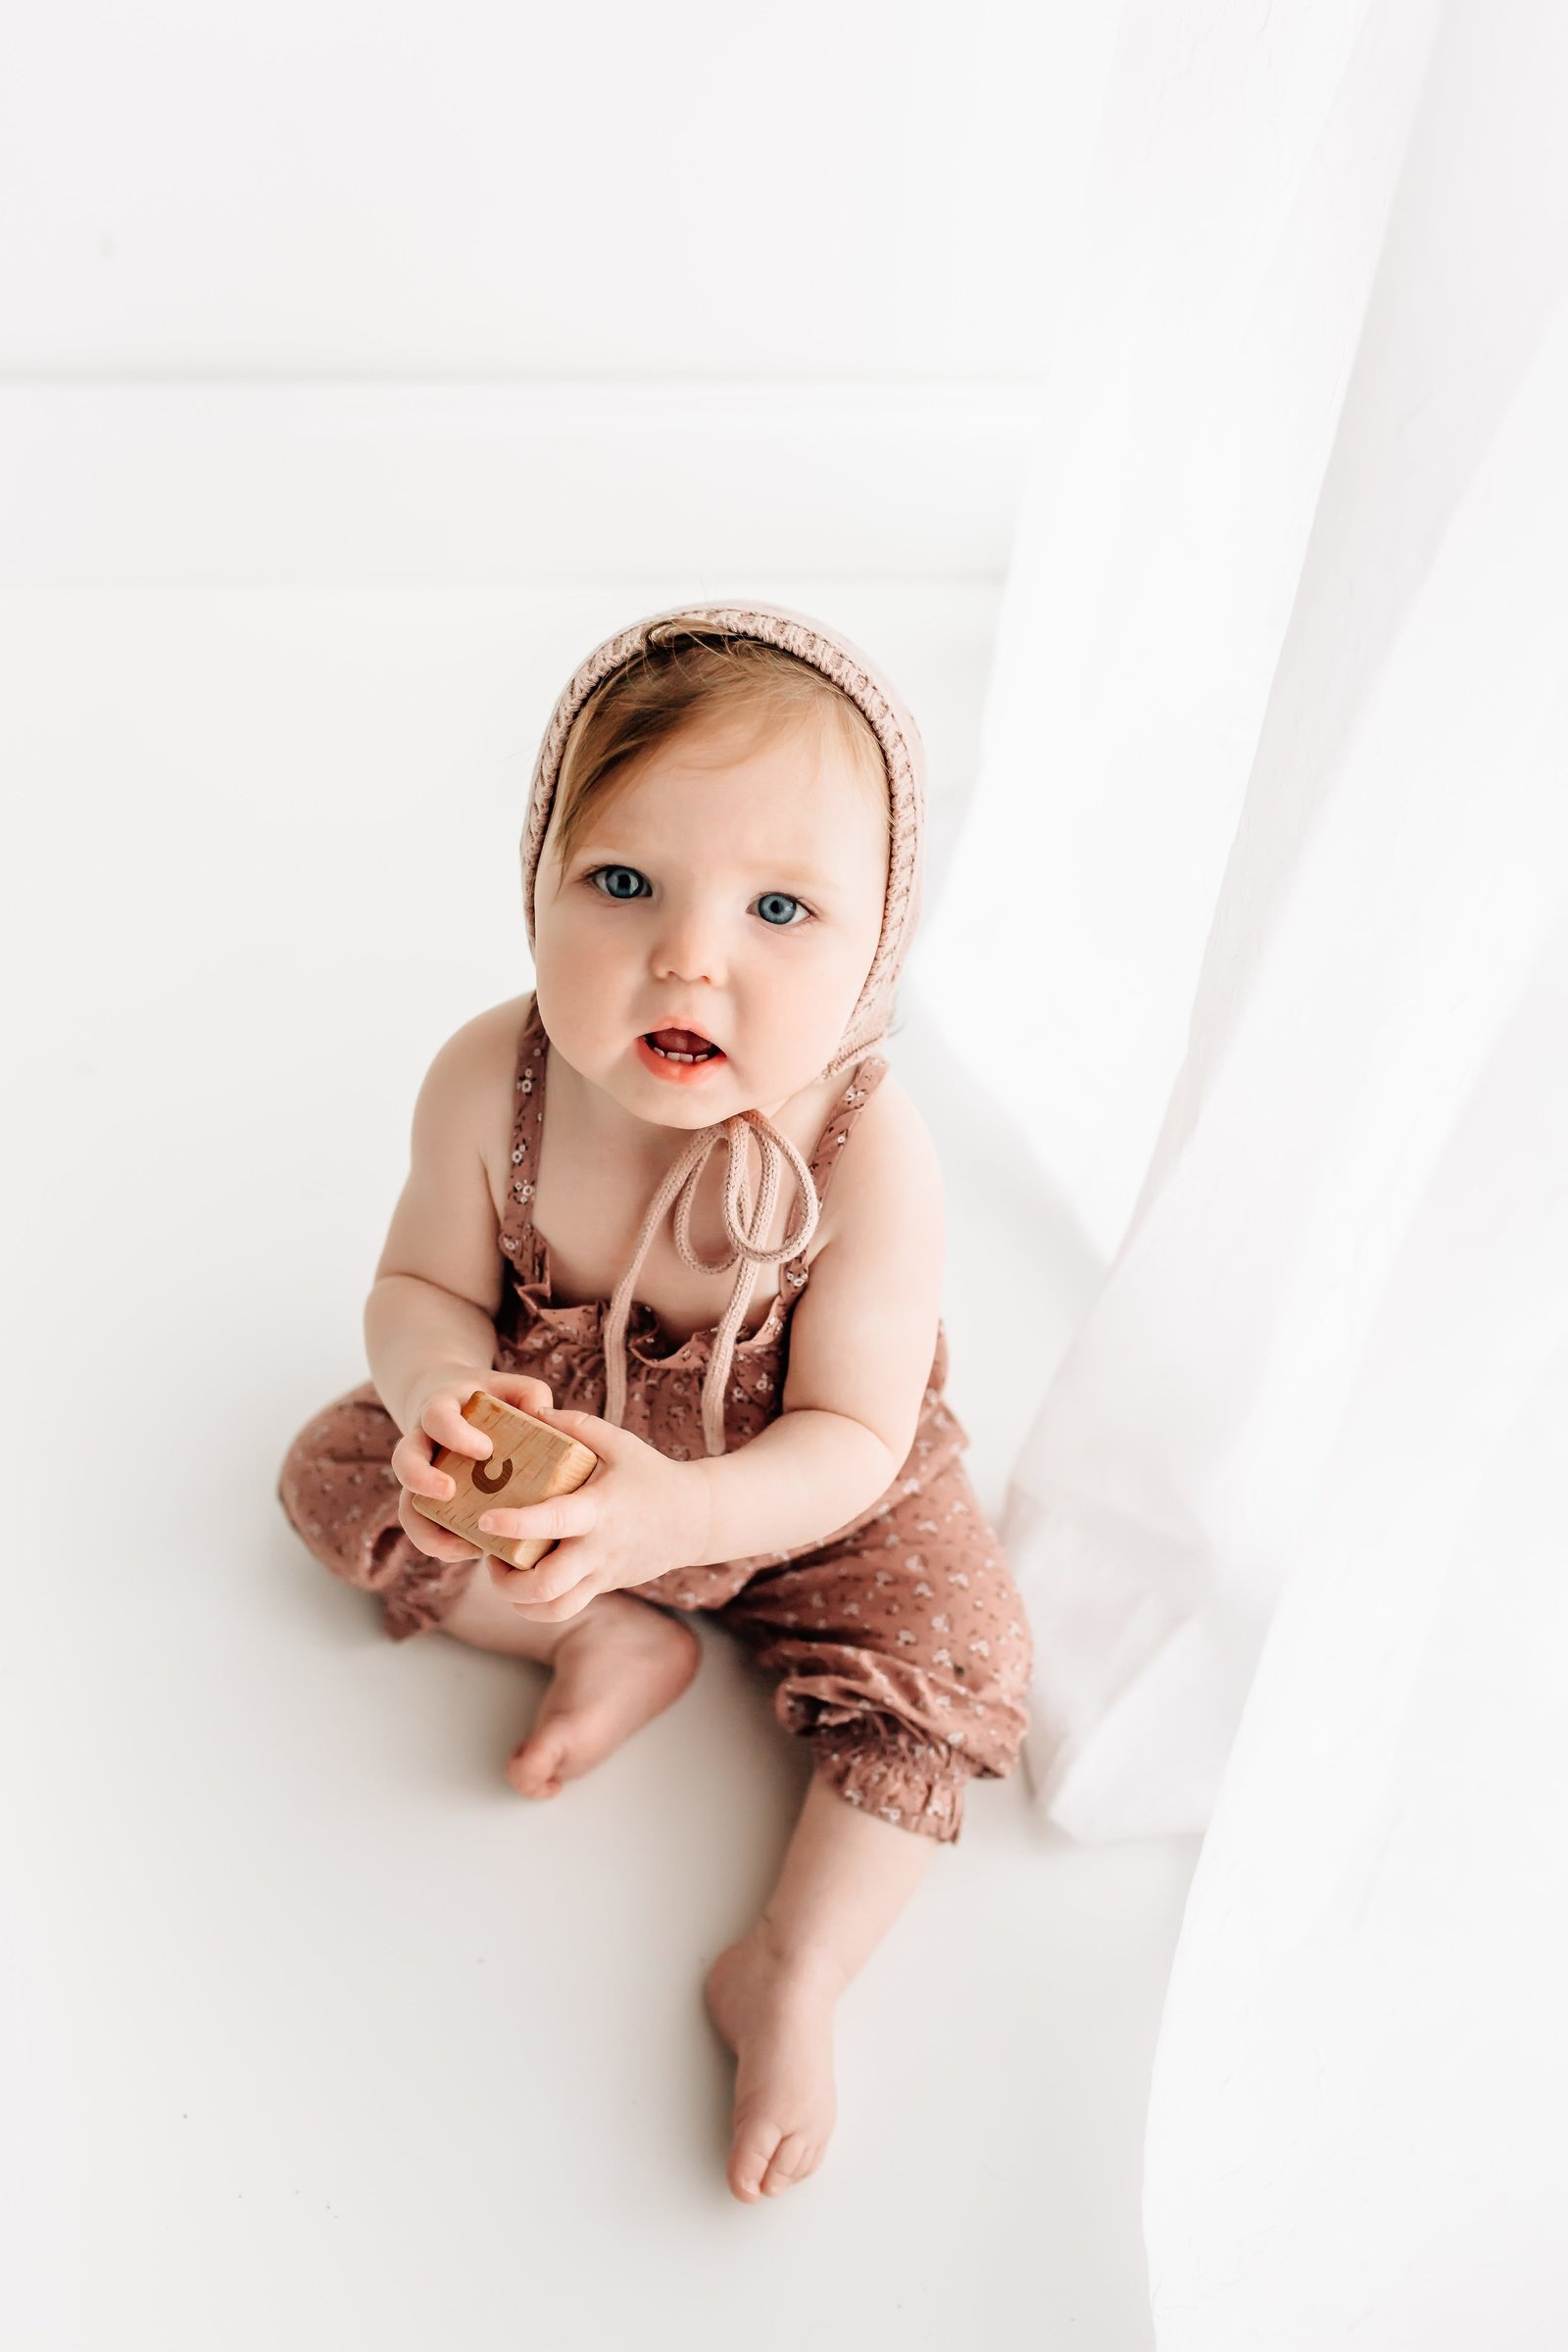 St_Louis_Baby_Photographer_Kelly_Laramore_Photography_37